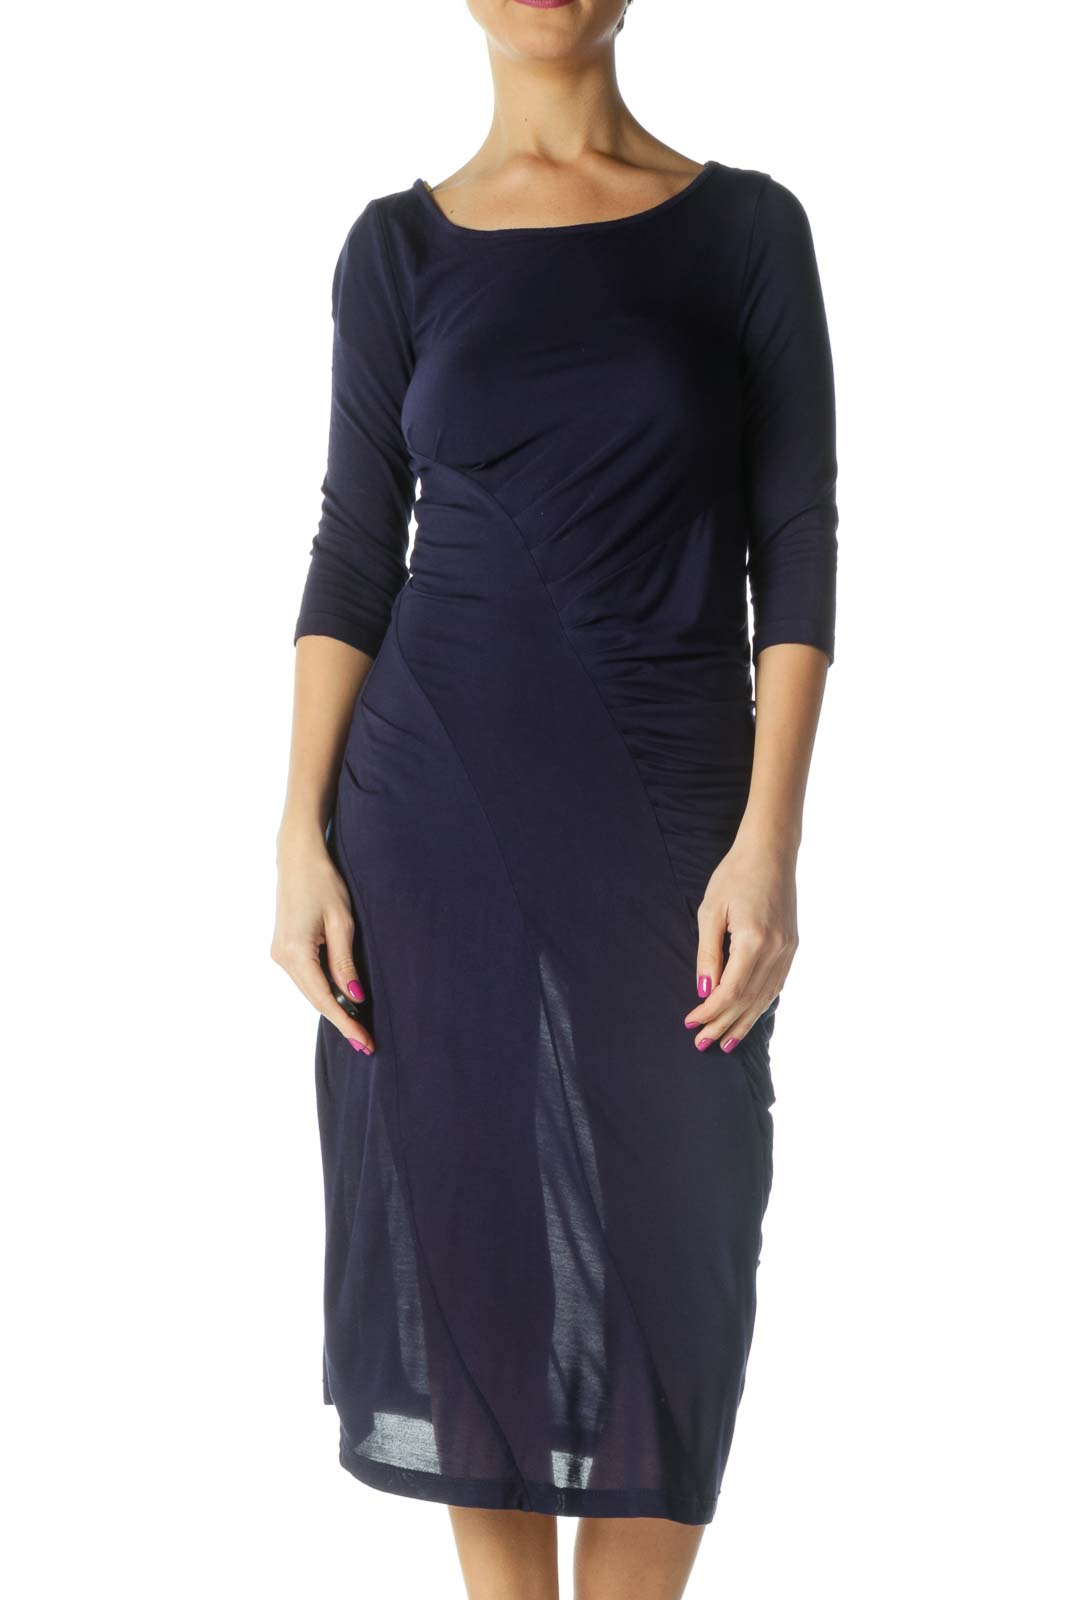 Blue Solid Casual Shift Dress Front